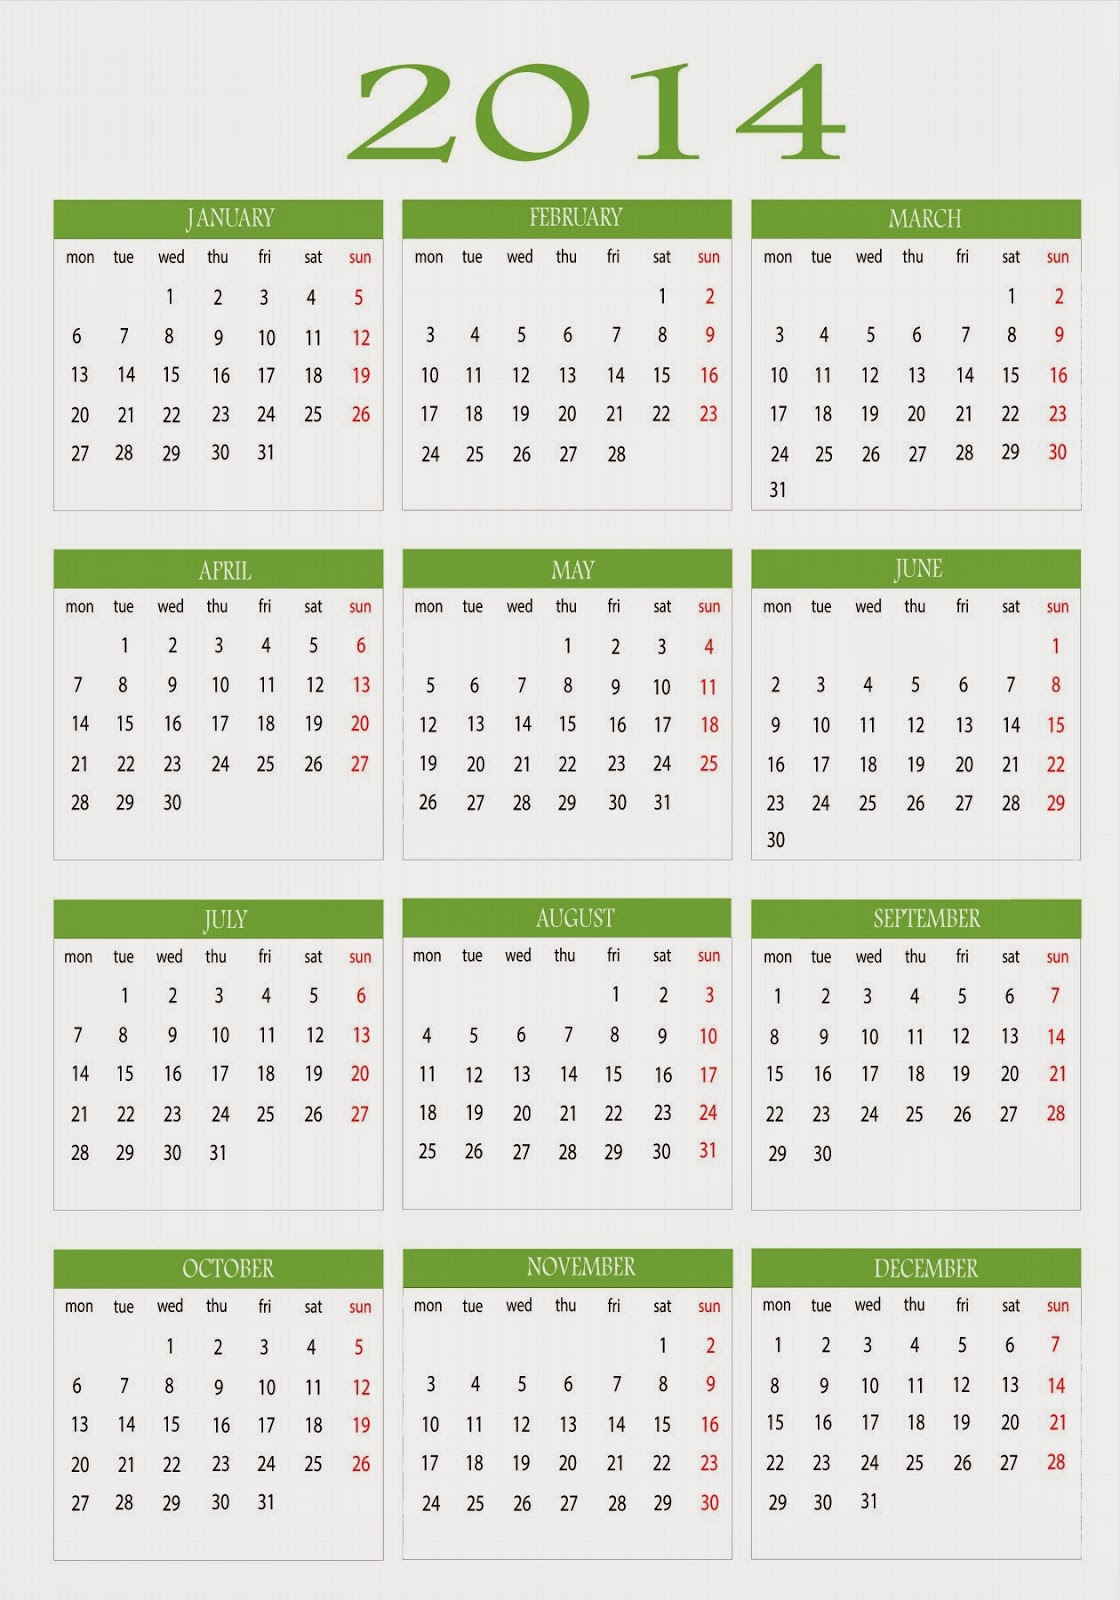 Year Calendar Download Free : Happy new year calendar hd wallpapers and vectors